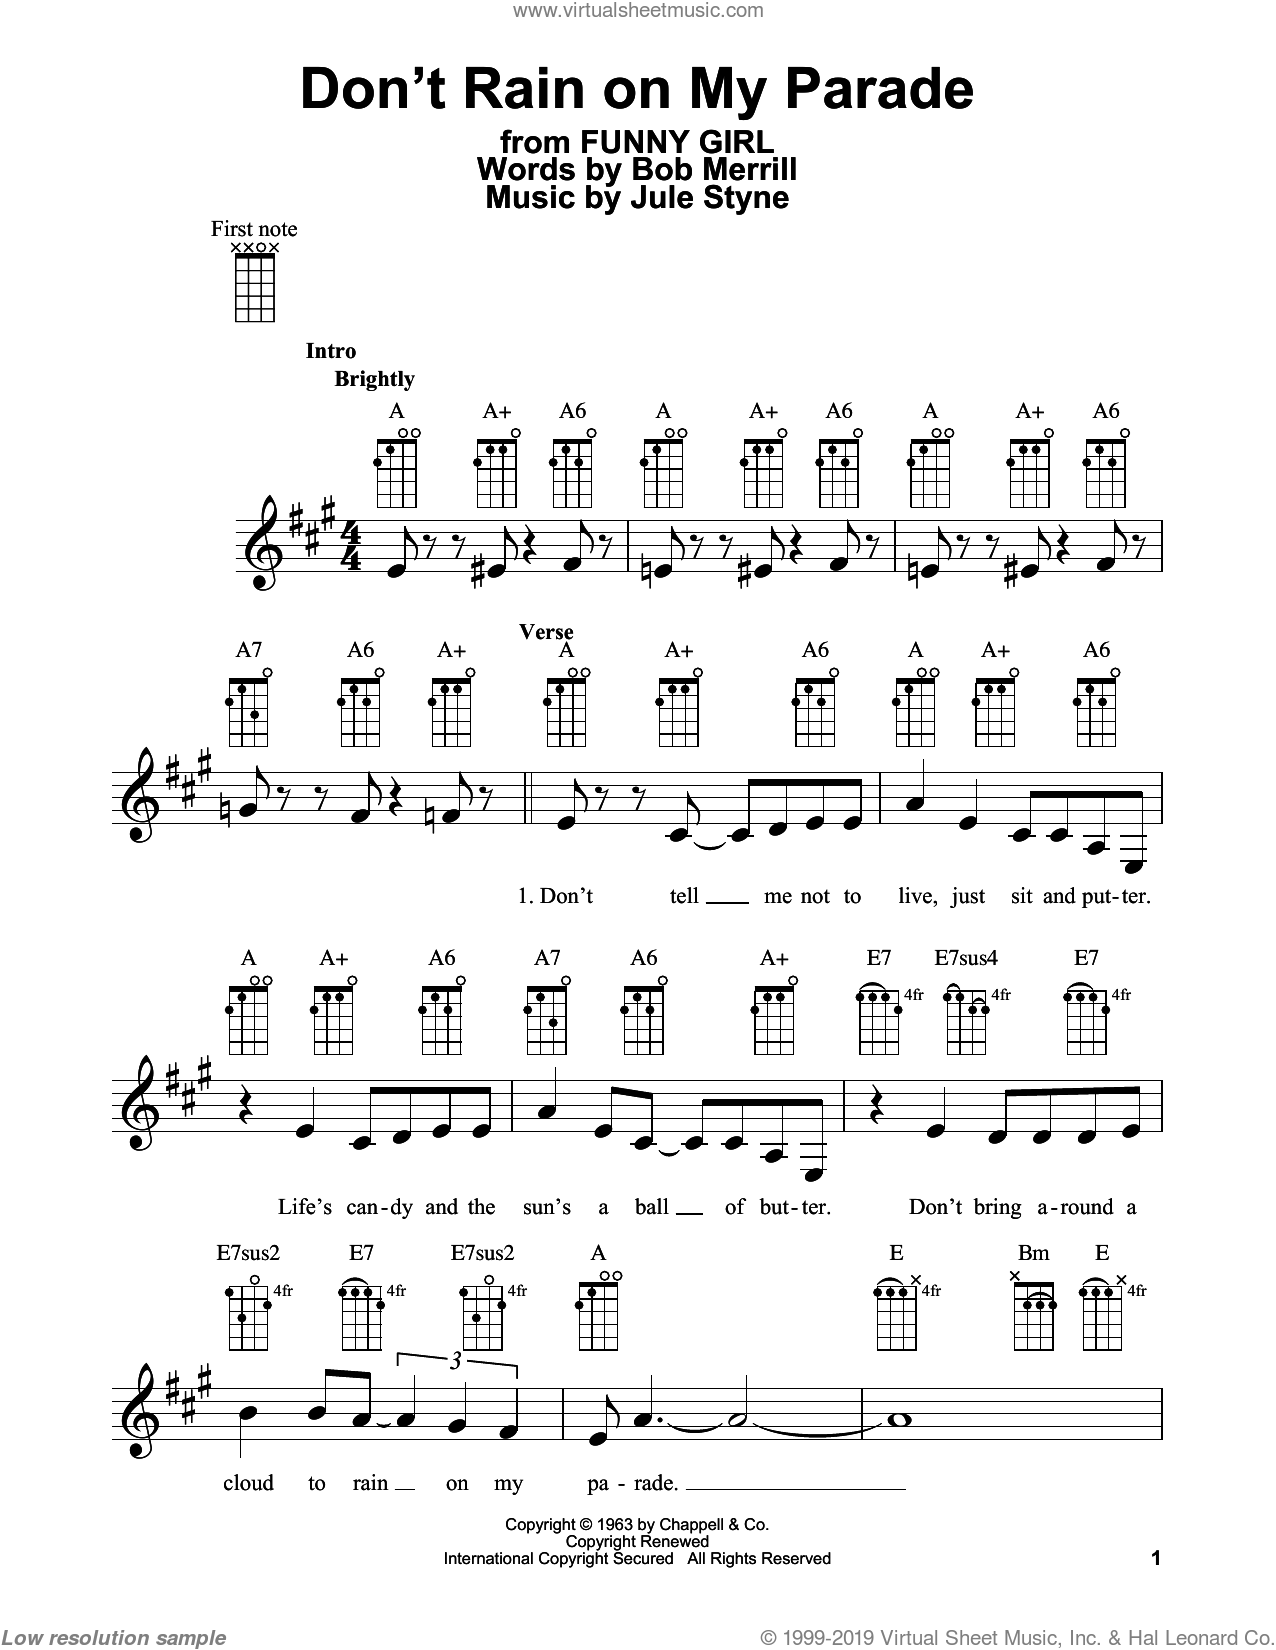 Don't Rain On My Parade sheet music for ukulele by Jule Styne, Barbra Streisand, Bob Merrill and Glee Cast. Score Image Preview.